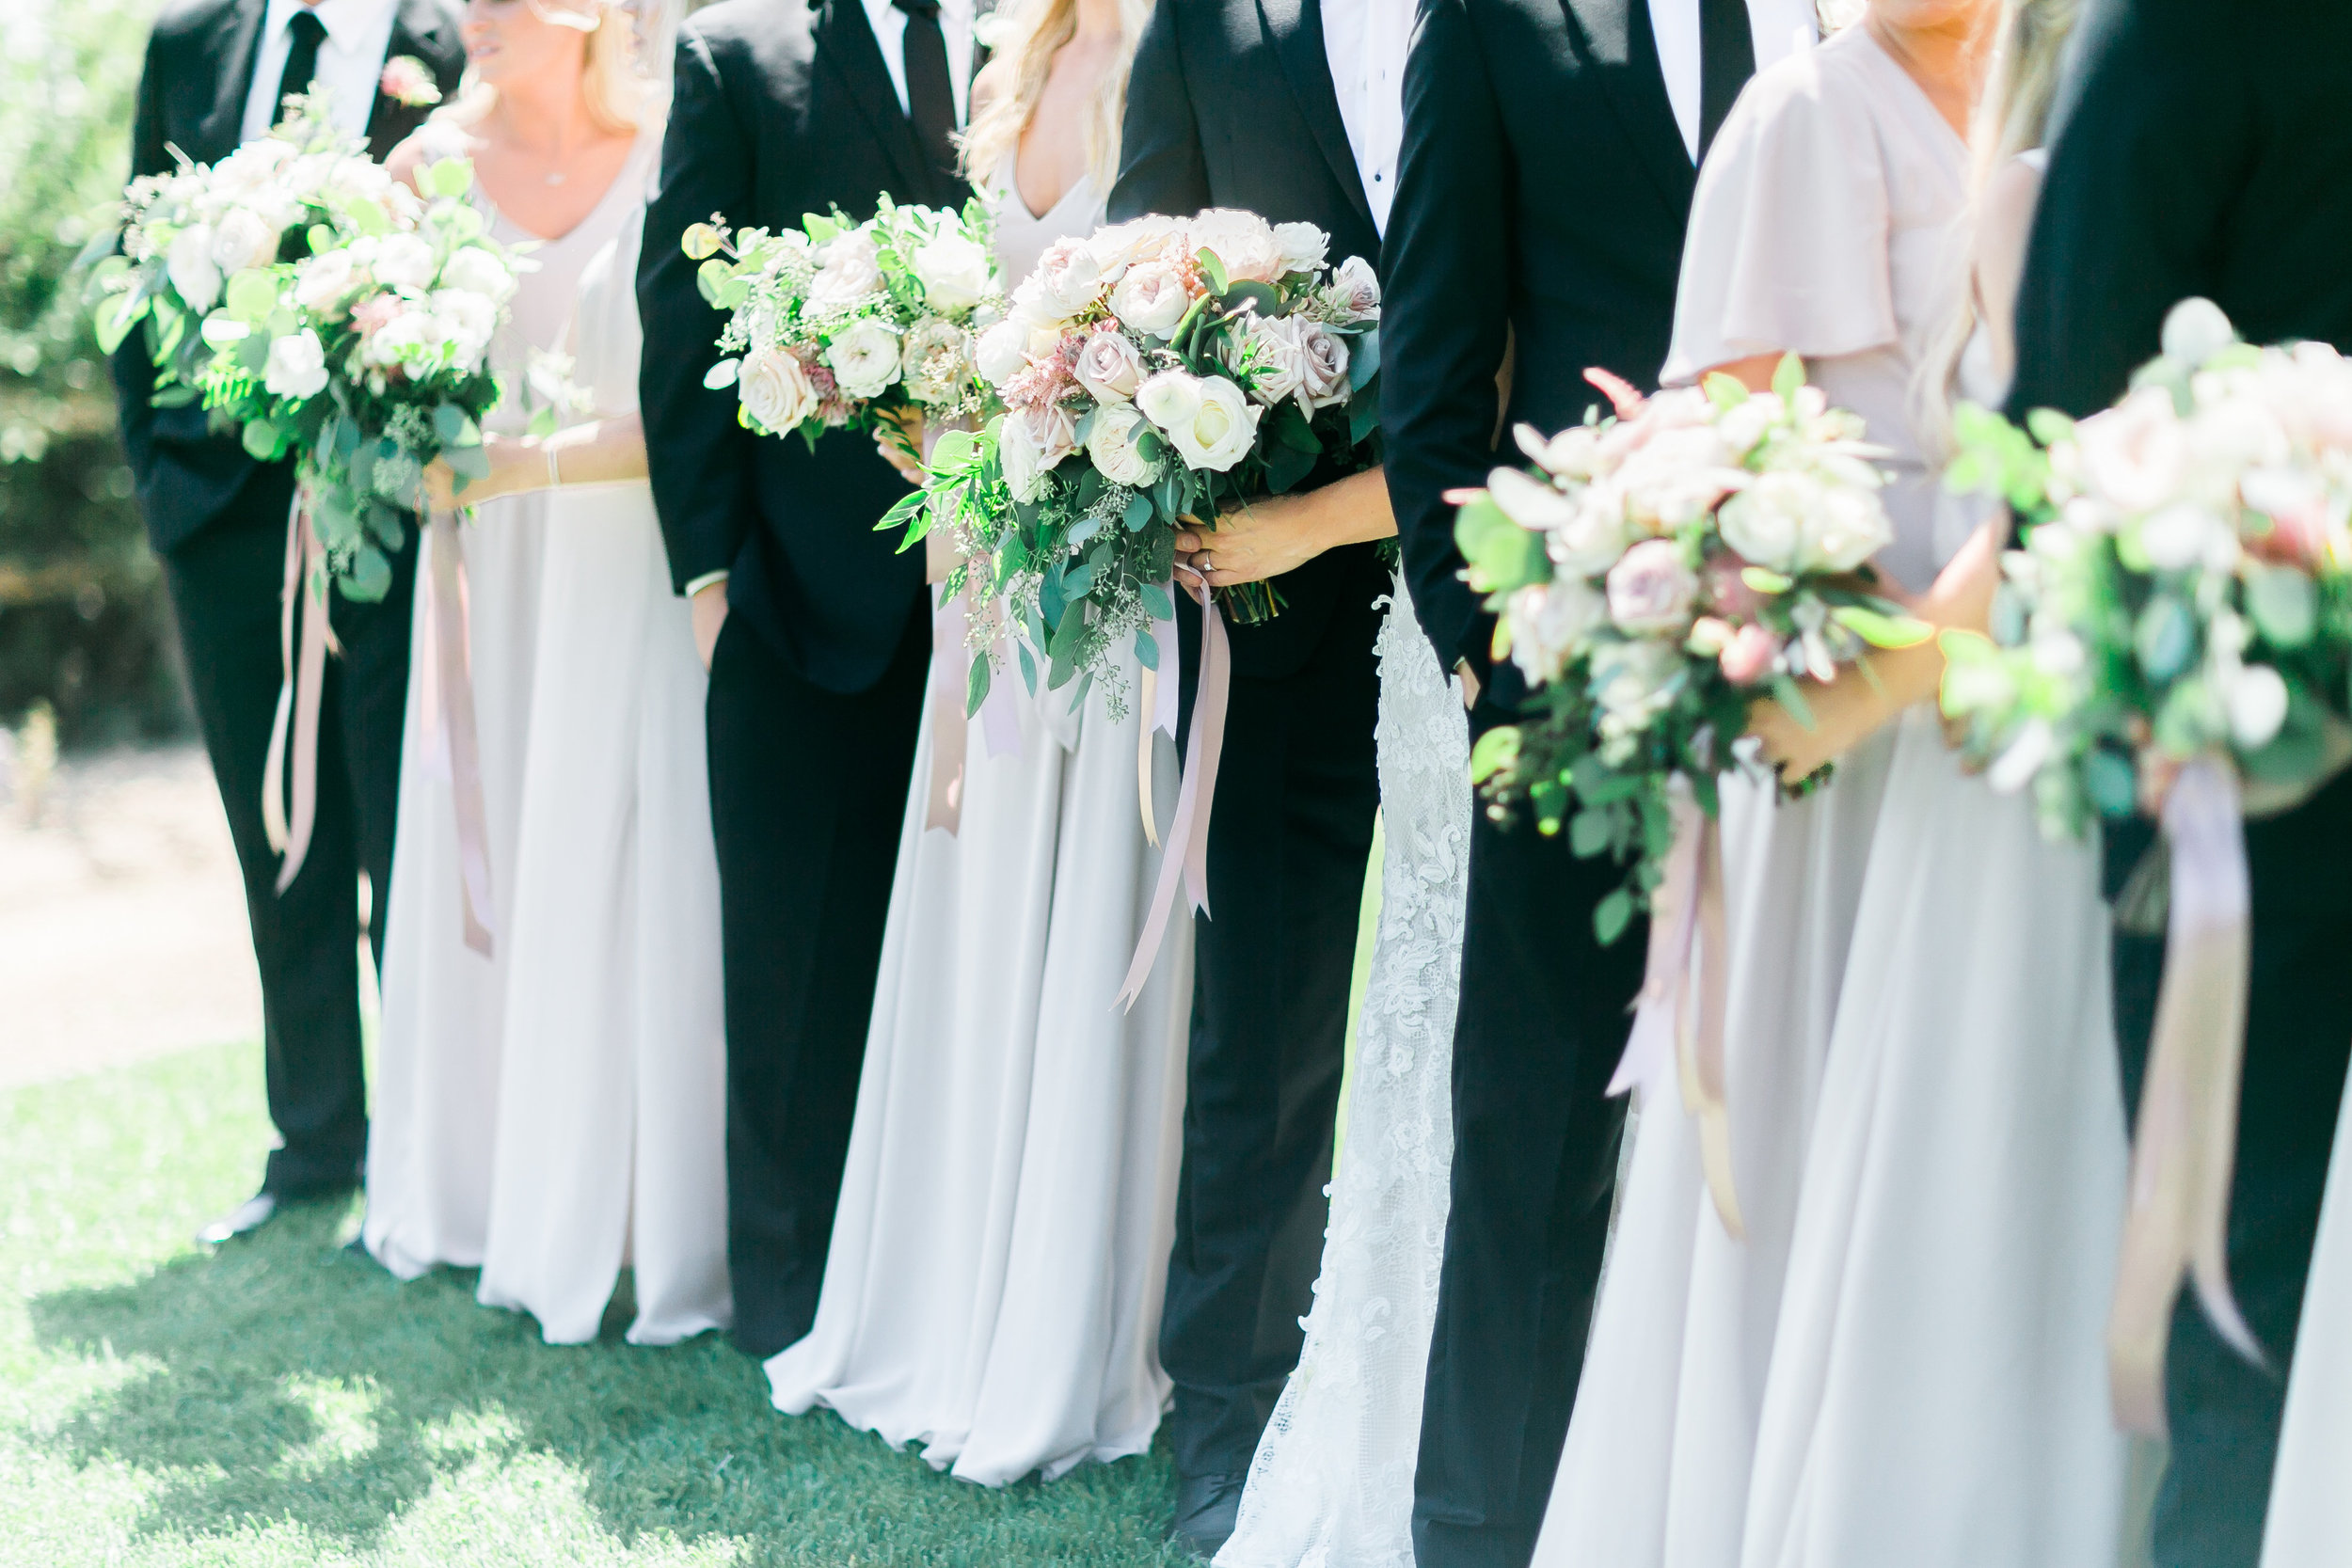 Bridesmaids and Groomsmen with Bouquets.   CREDITS:  Destination Wedding Planner  ANDREA EPPOLITO EVENTS  · Images by  J.ANNE P  HOTOGRAPHY  · Video  HOO FILMS  · Venue Ritz Carlton Bacara Santa Barbara ·Gown  MONIQUE LHULLIER ·Bridesmaids Dresses  SHOW ME YOUR MUMU ·Stationery  SHE PAPERIE ·Bride's Shoes  BADGLEY MISCHKA ·Hair and Makeup  TEAM HAIR AND MAKEUP · Floral  BLUE MAGNOLIA ·Linen  LA TAVOLA ·Decor Rentals  TENT MERCHANT ·Calligraphy  EBB ·Lighting  FIVE STAR AV ·Ice Cream Station  MCCONNELL'S ICE CREAM